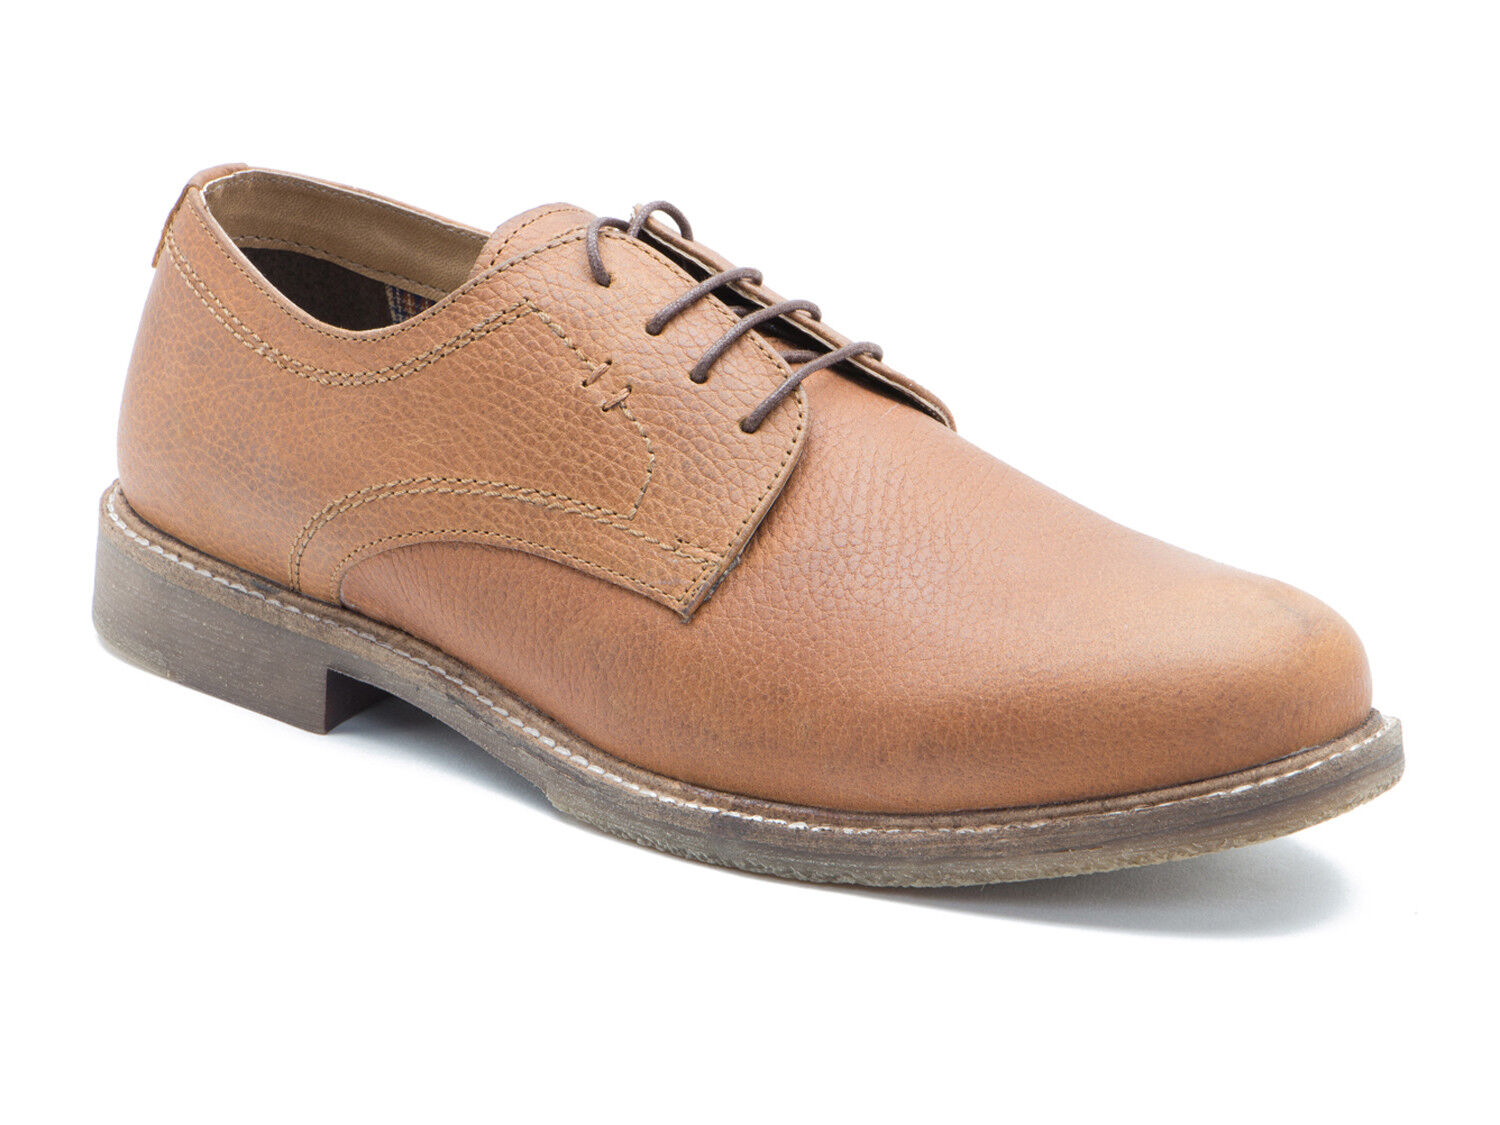 Red Tape Marlow Tan Honey Milled Leather Mens Formal shoes Free UK P&P